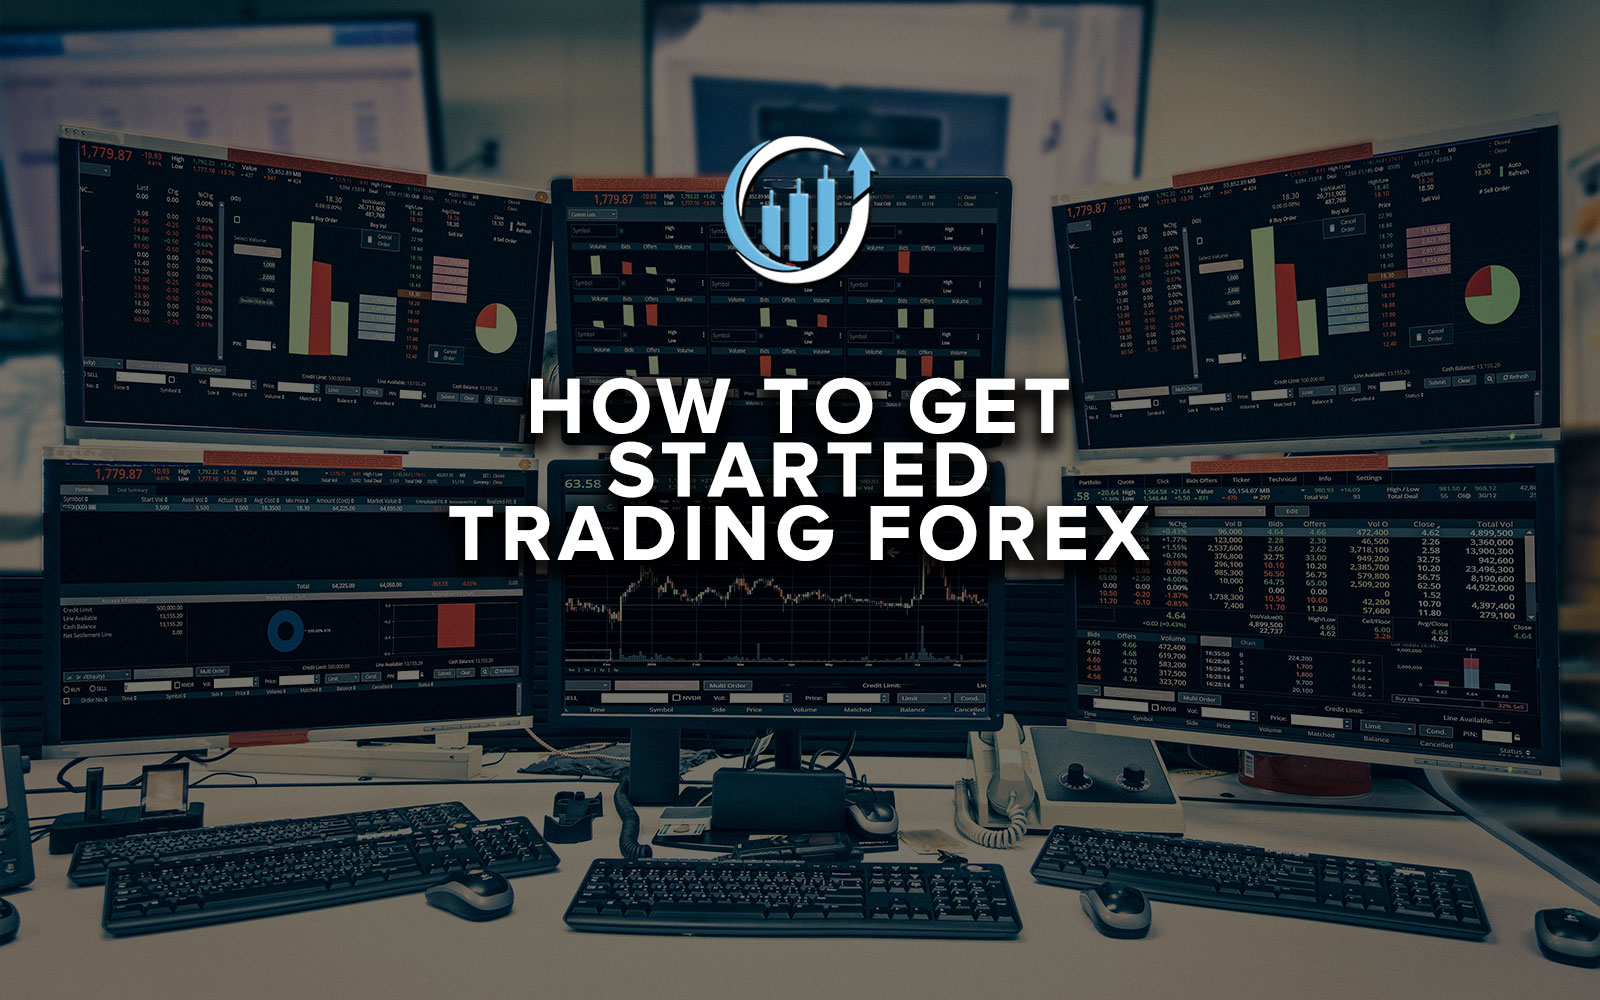 How To Get Started Trading Forex